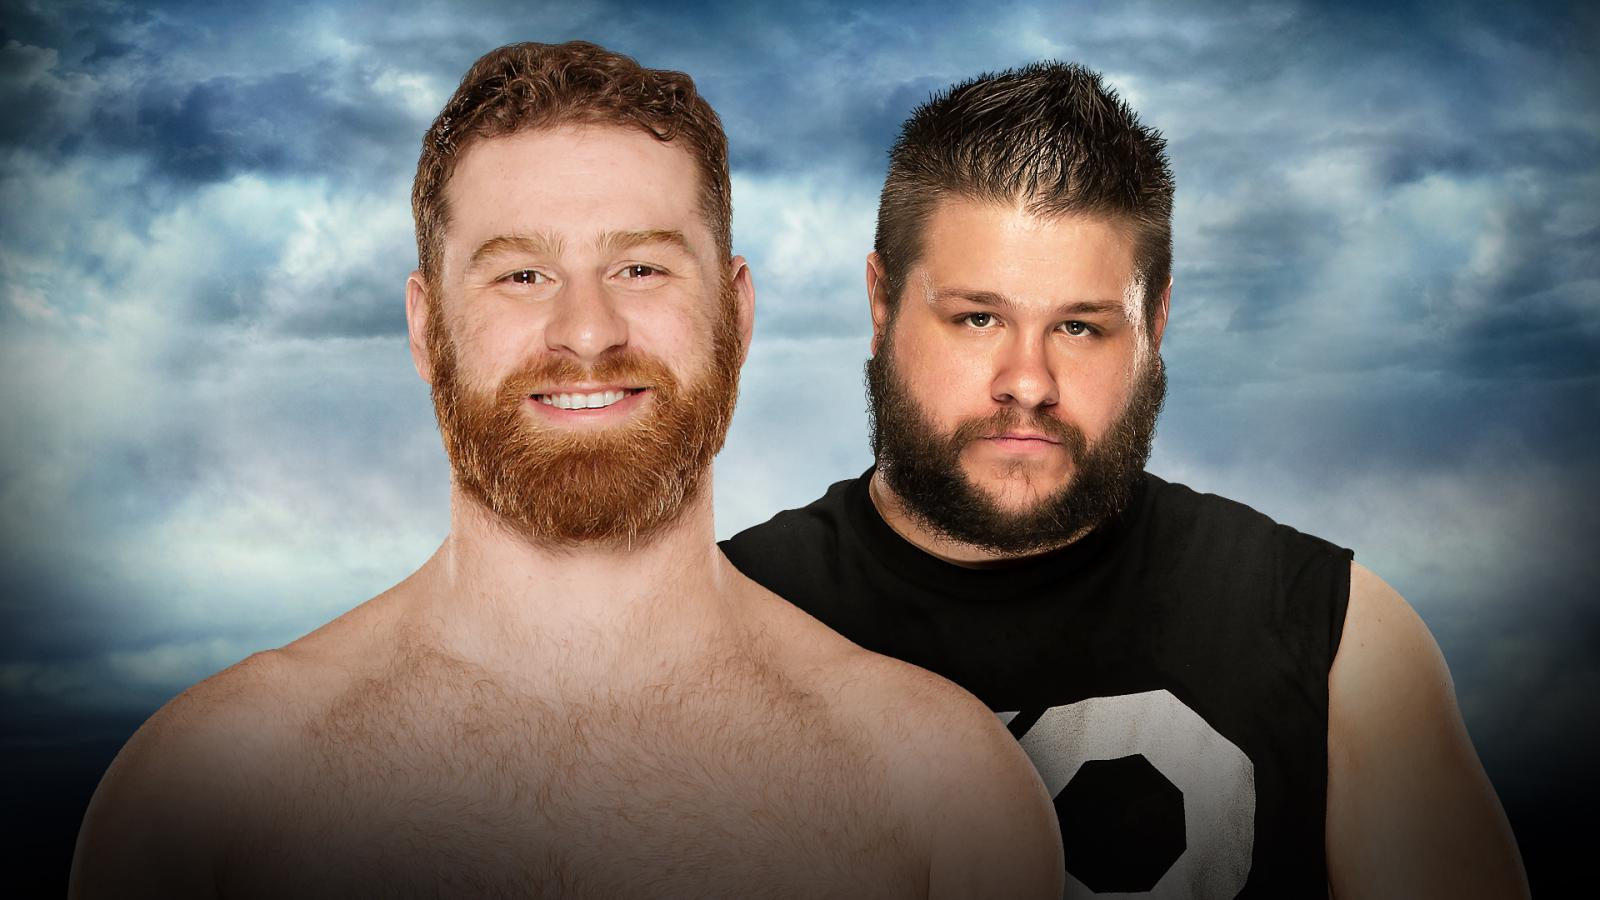 Battleground 2016 - Sami Zayn Vs. Kevin Owens